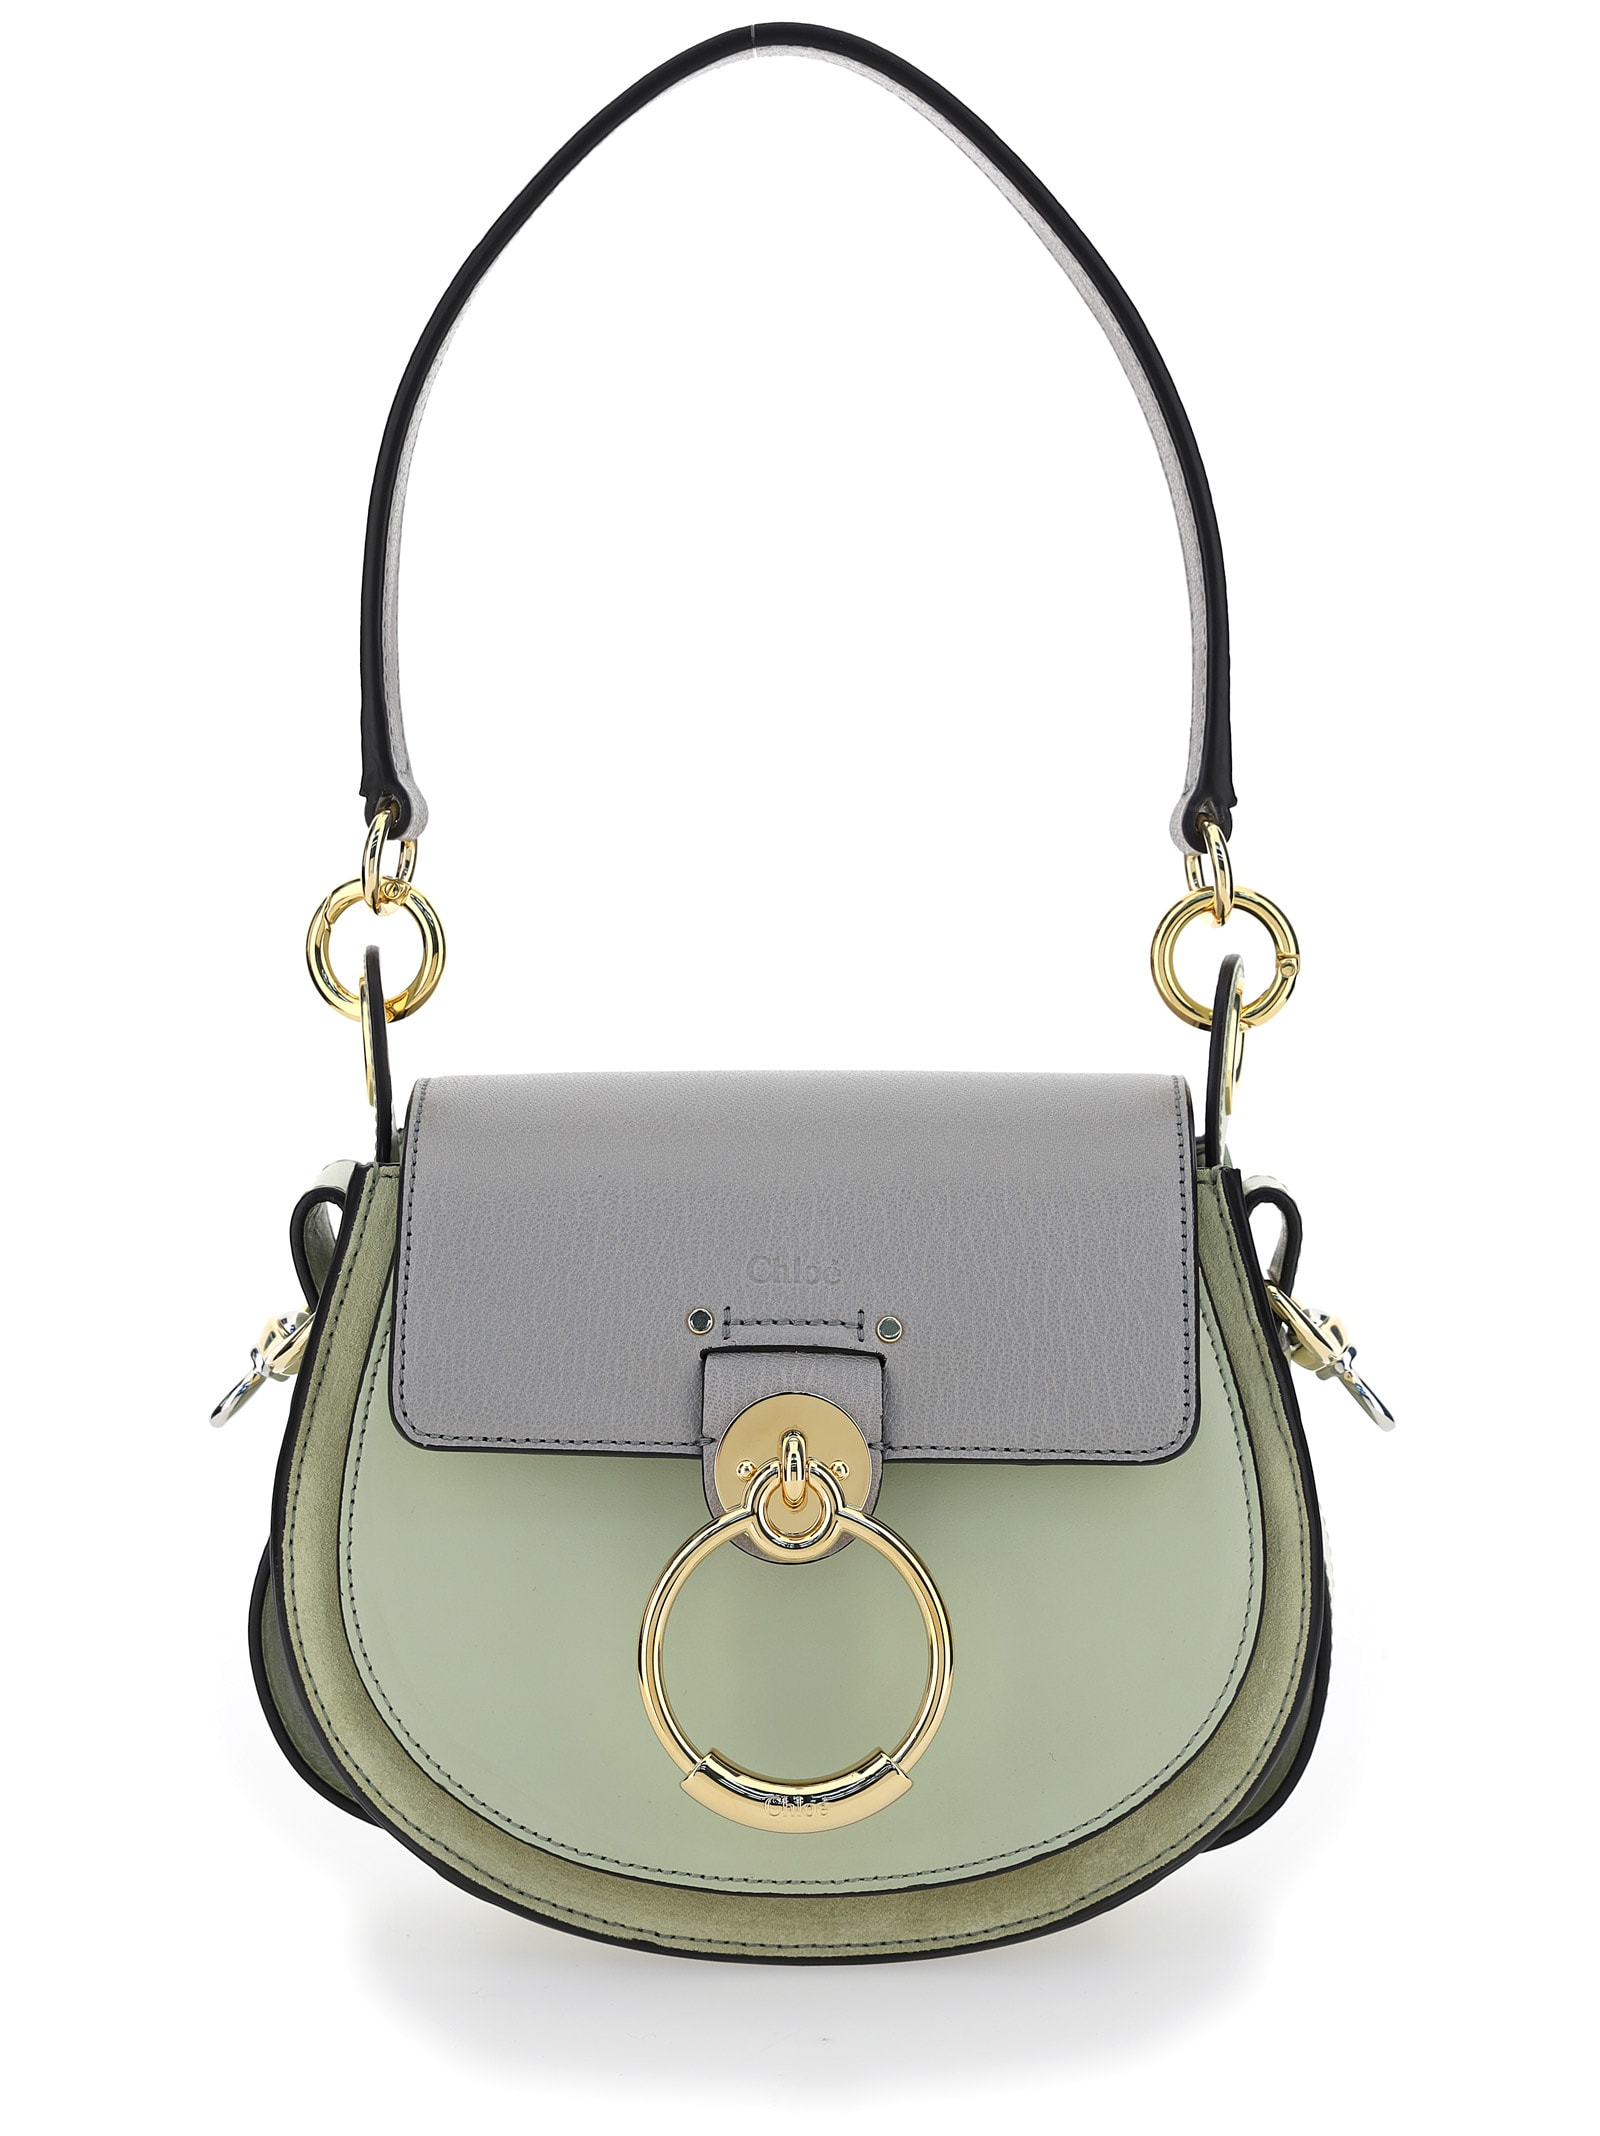 Chloé CHLOÈ SMALL TESS SHOULDER BAG